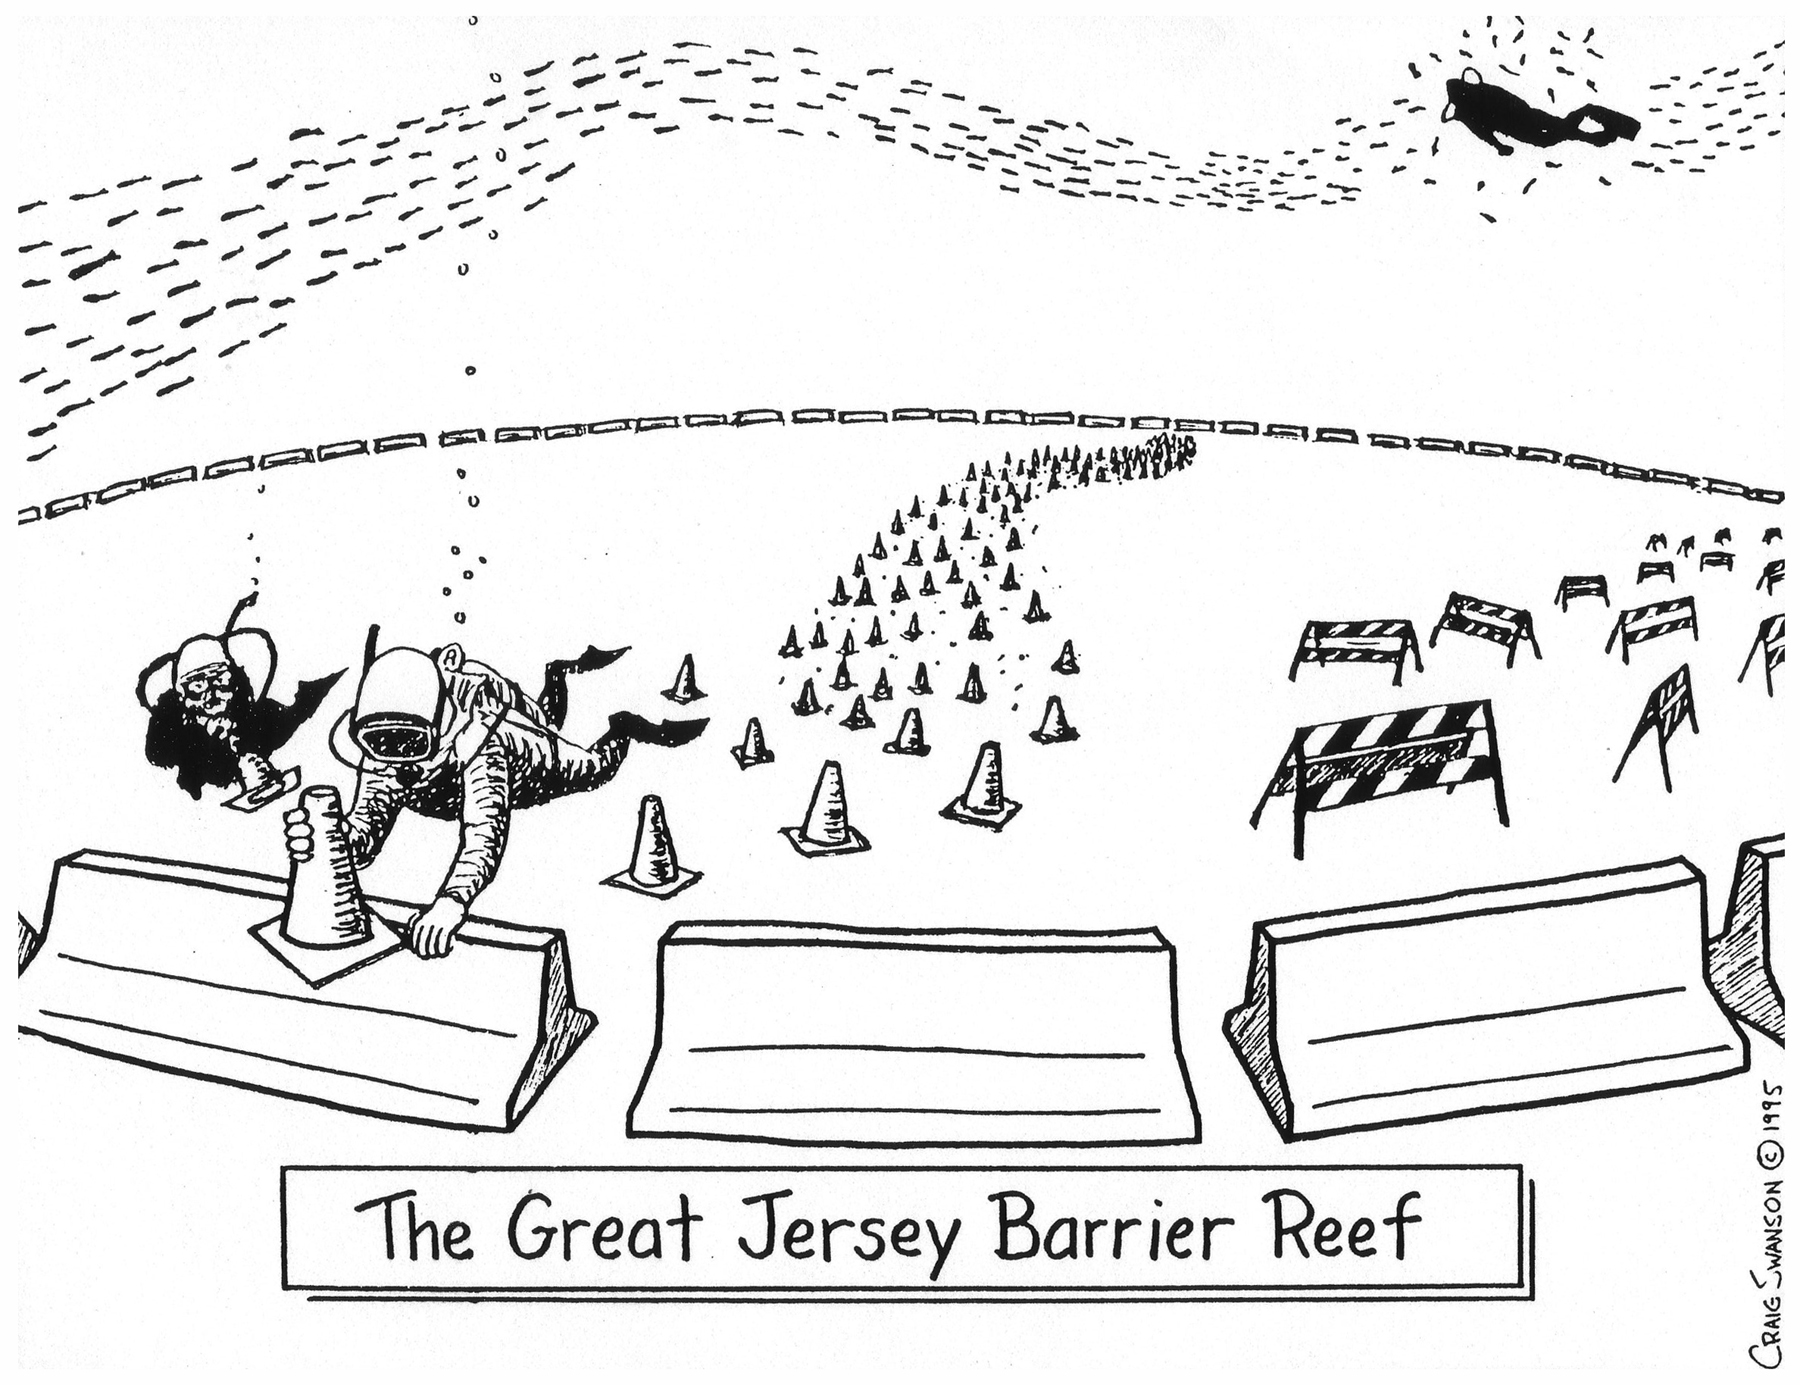 The Great Jersey Barrier Reef